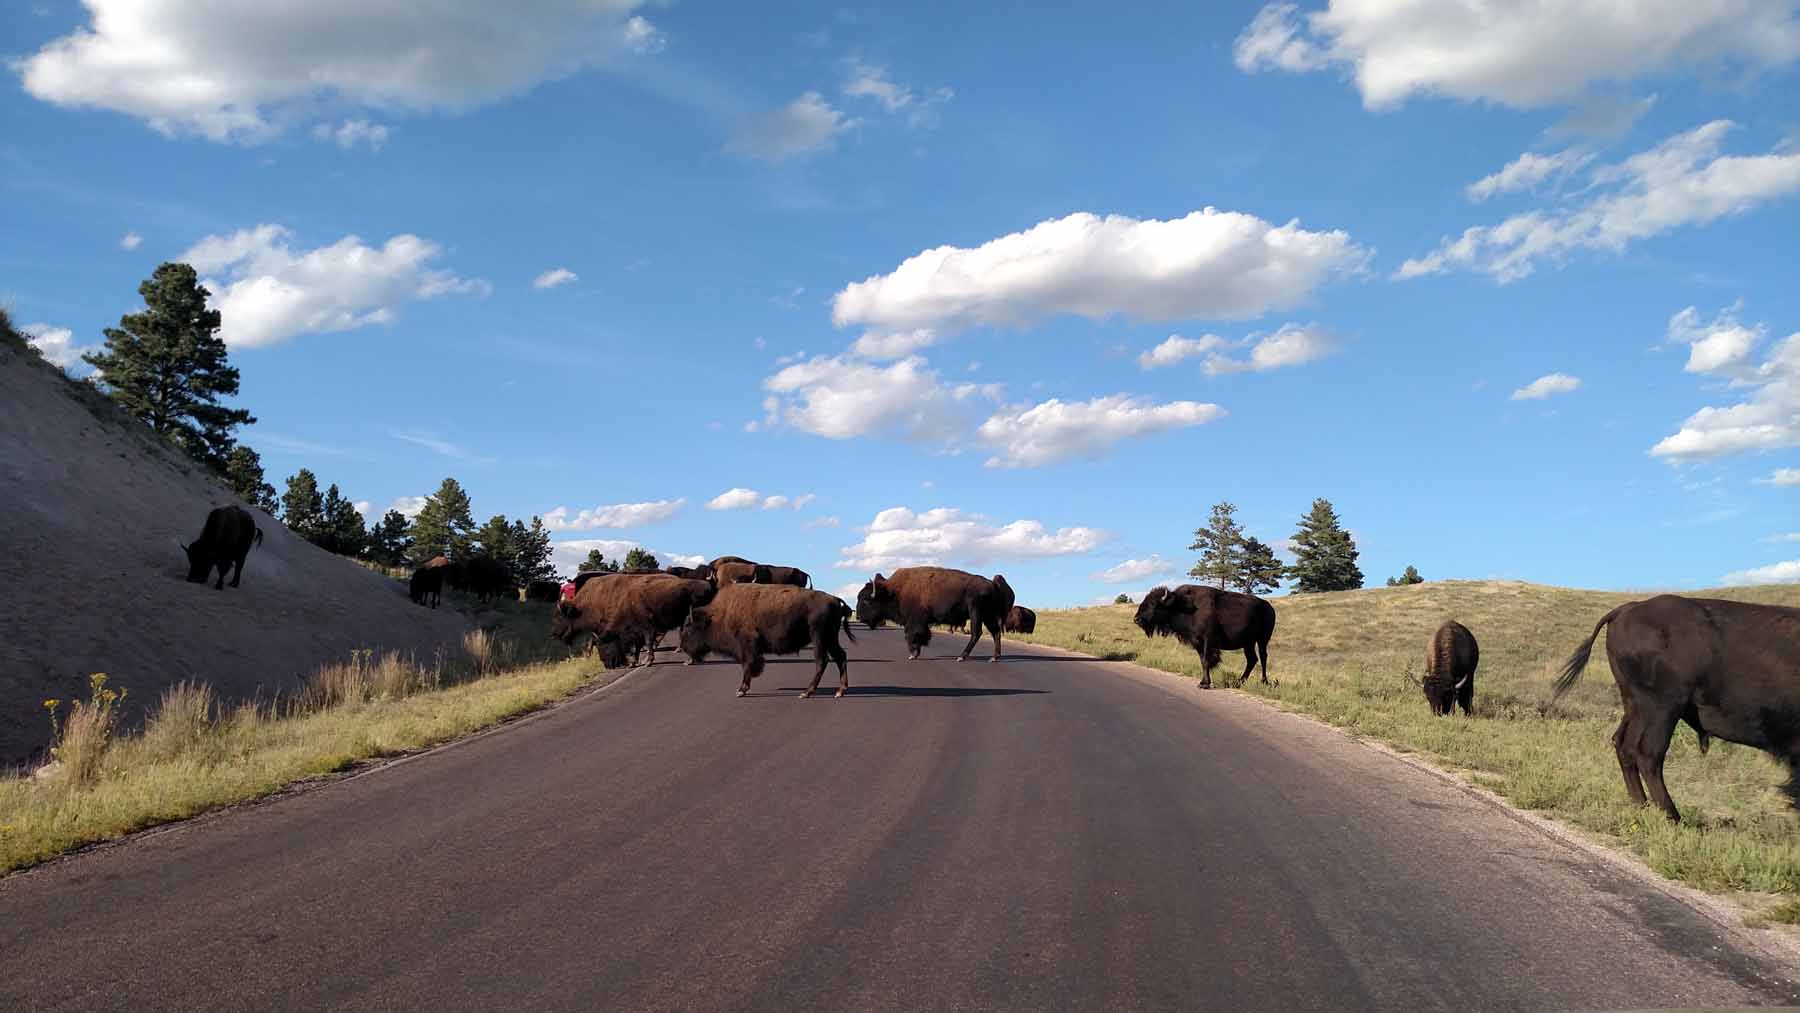 Buffalo on road